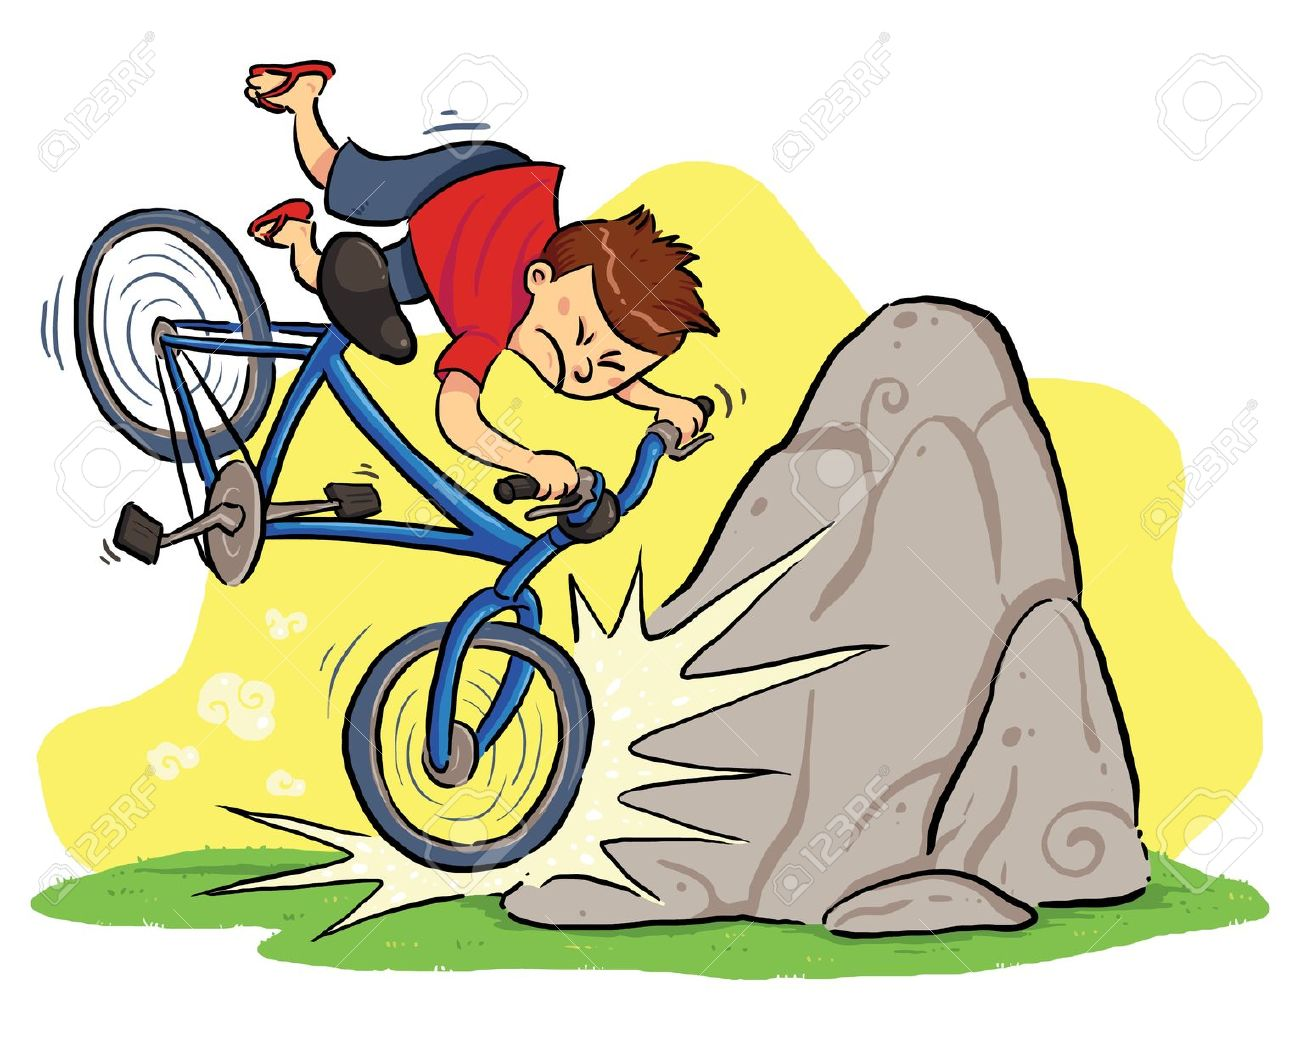 Accident Cartoon Clipart Free Download Best Accident Cartoon